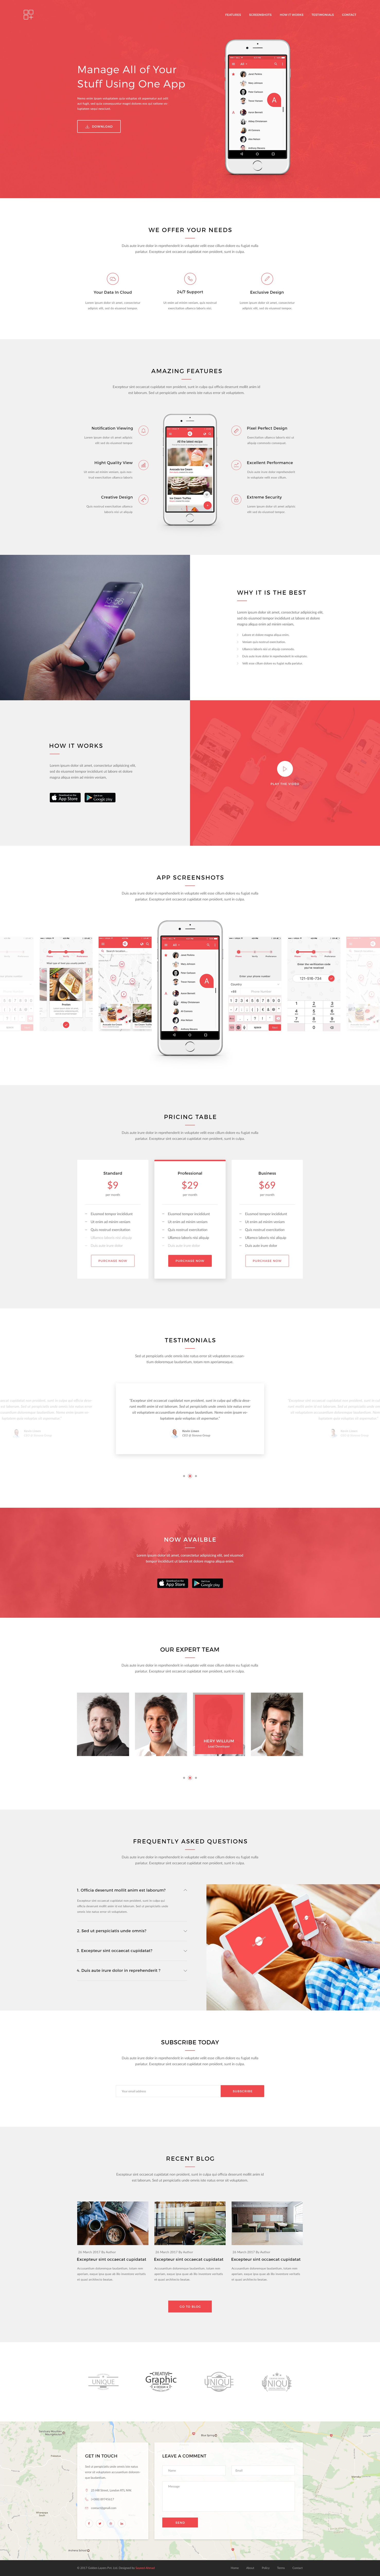 Meson - App Landing Page by GoldenLayers | ThemeForest | App Landing